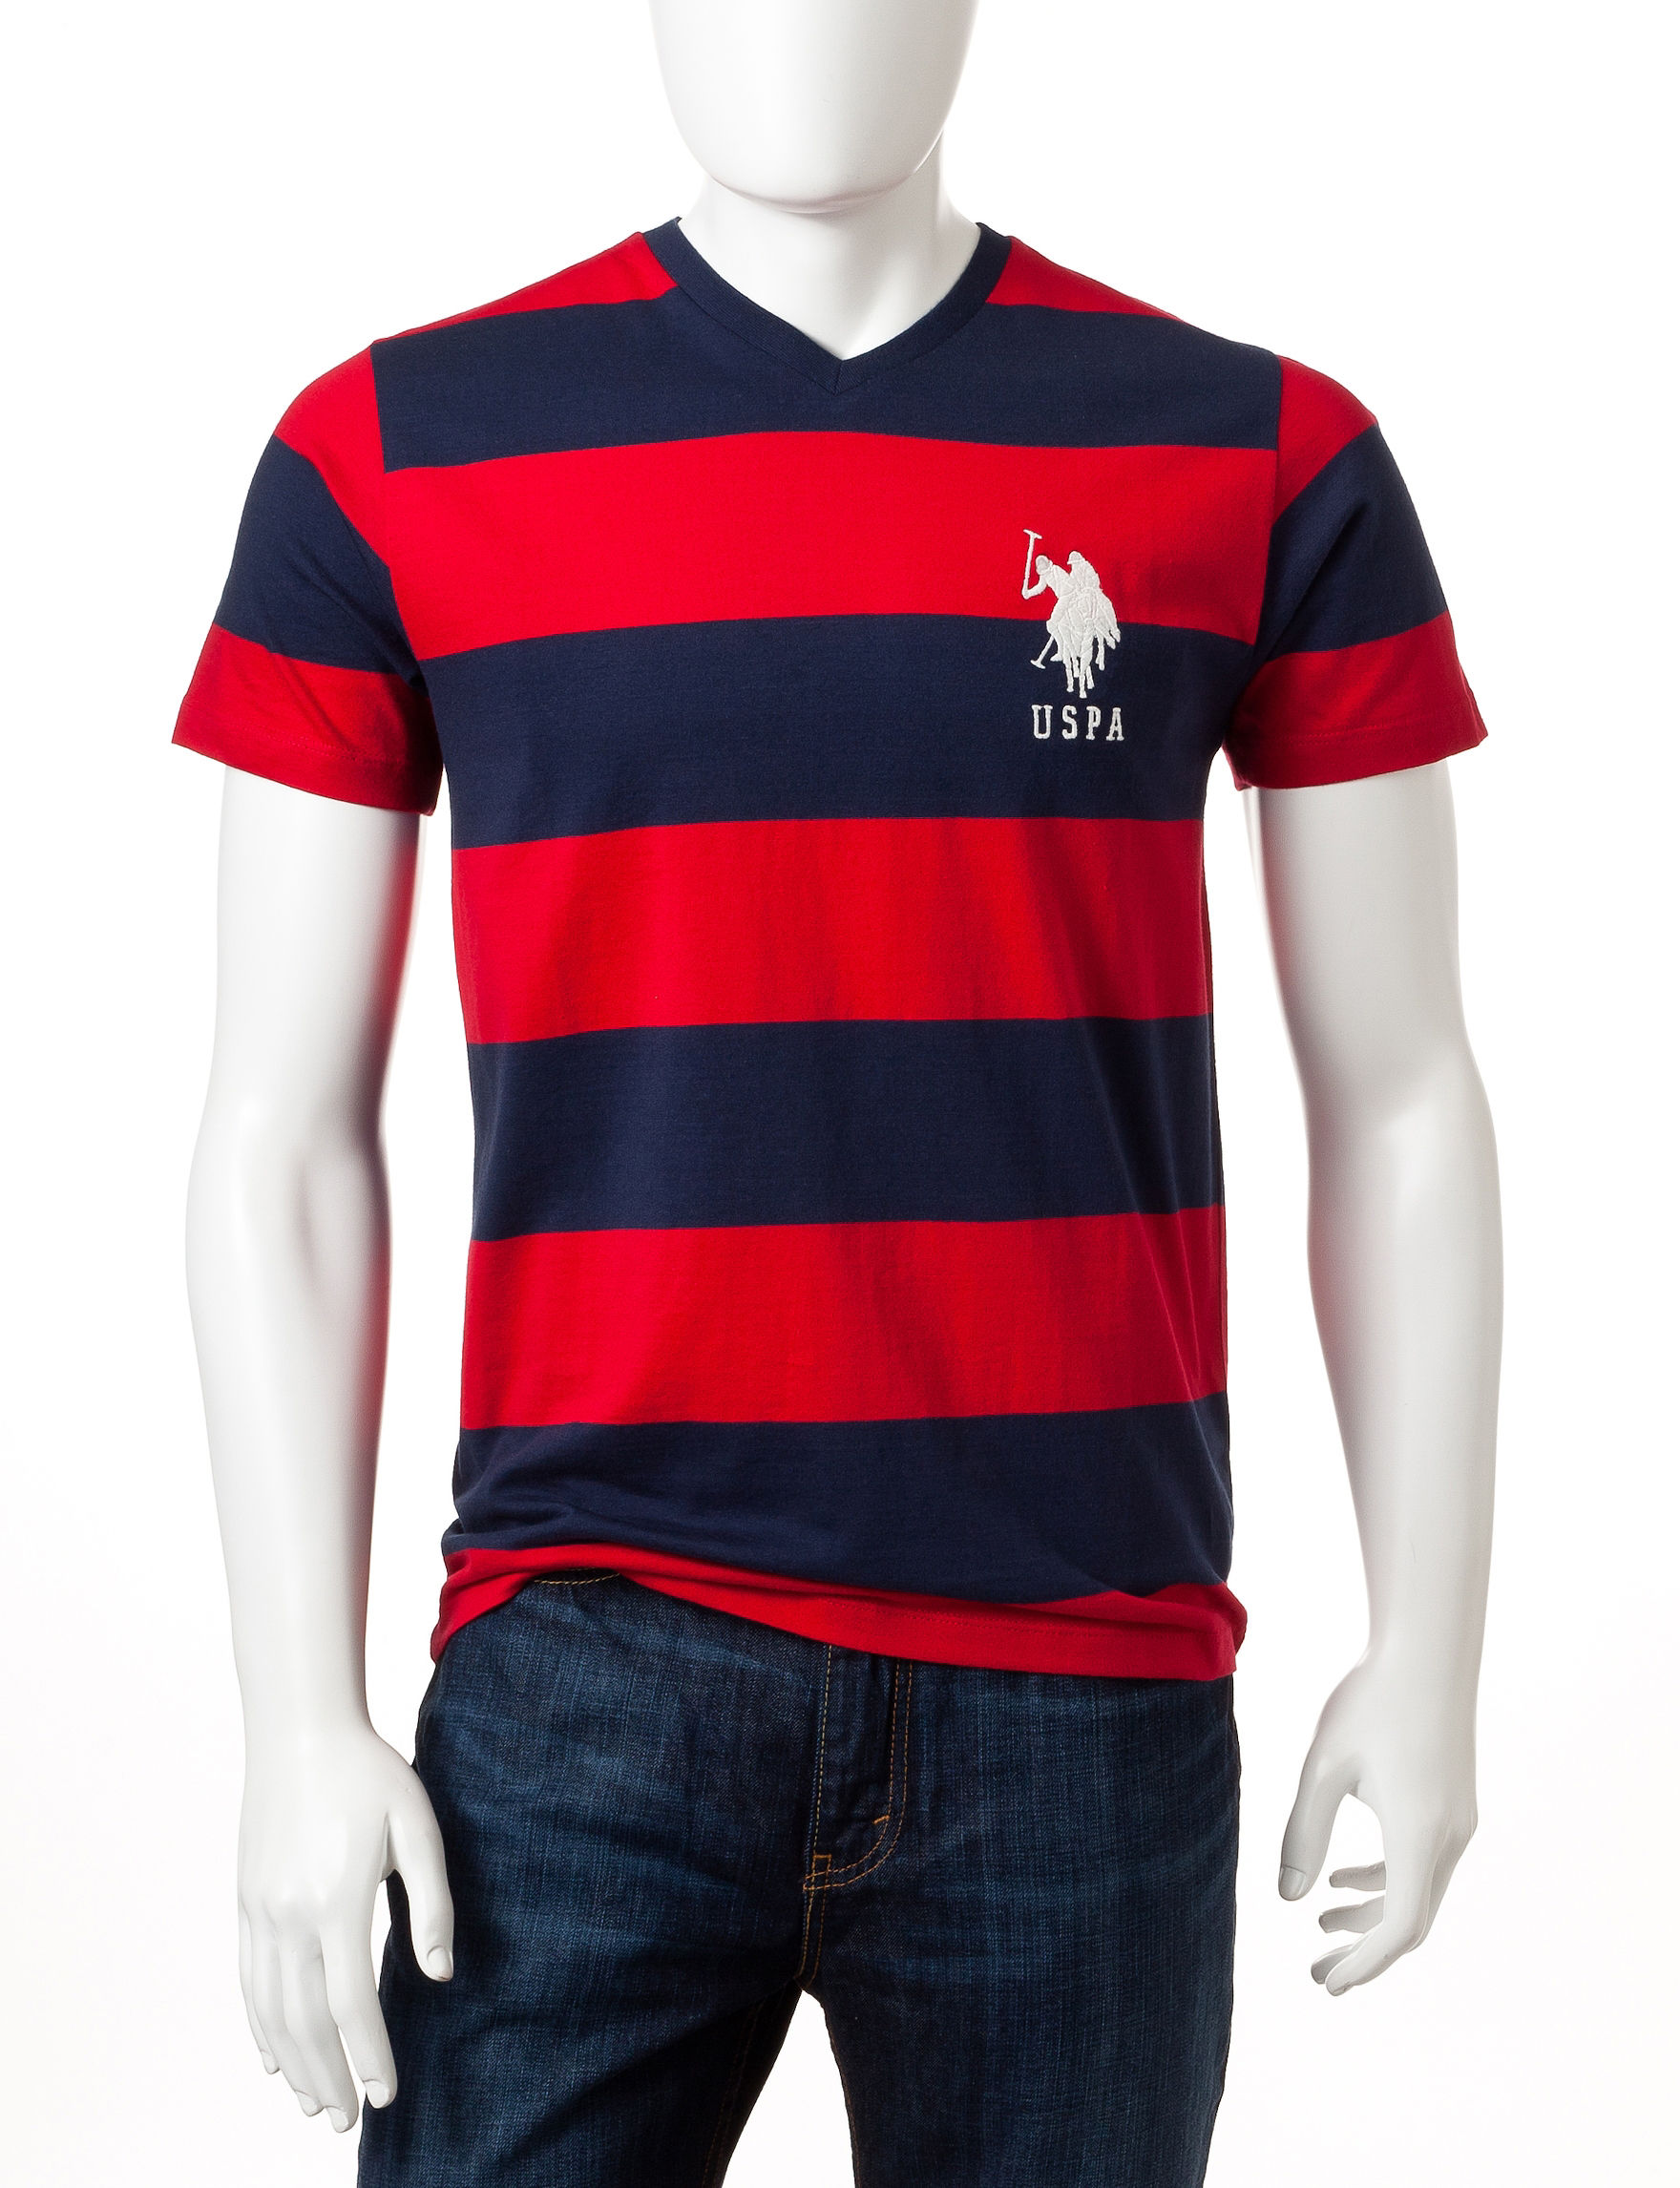 U.S. Polo Assn. Red Tees & Tanks